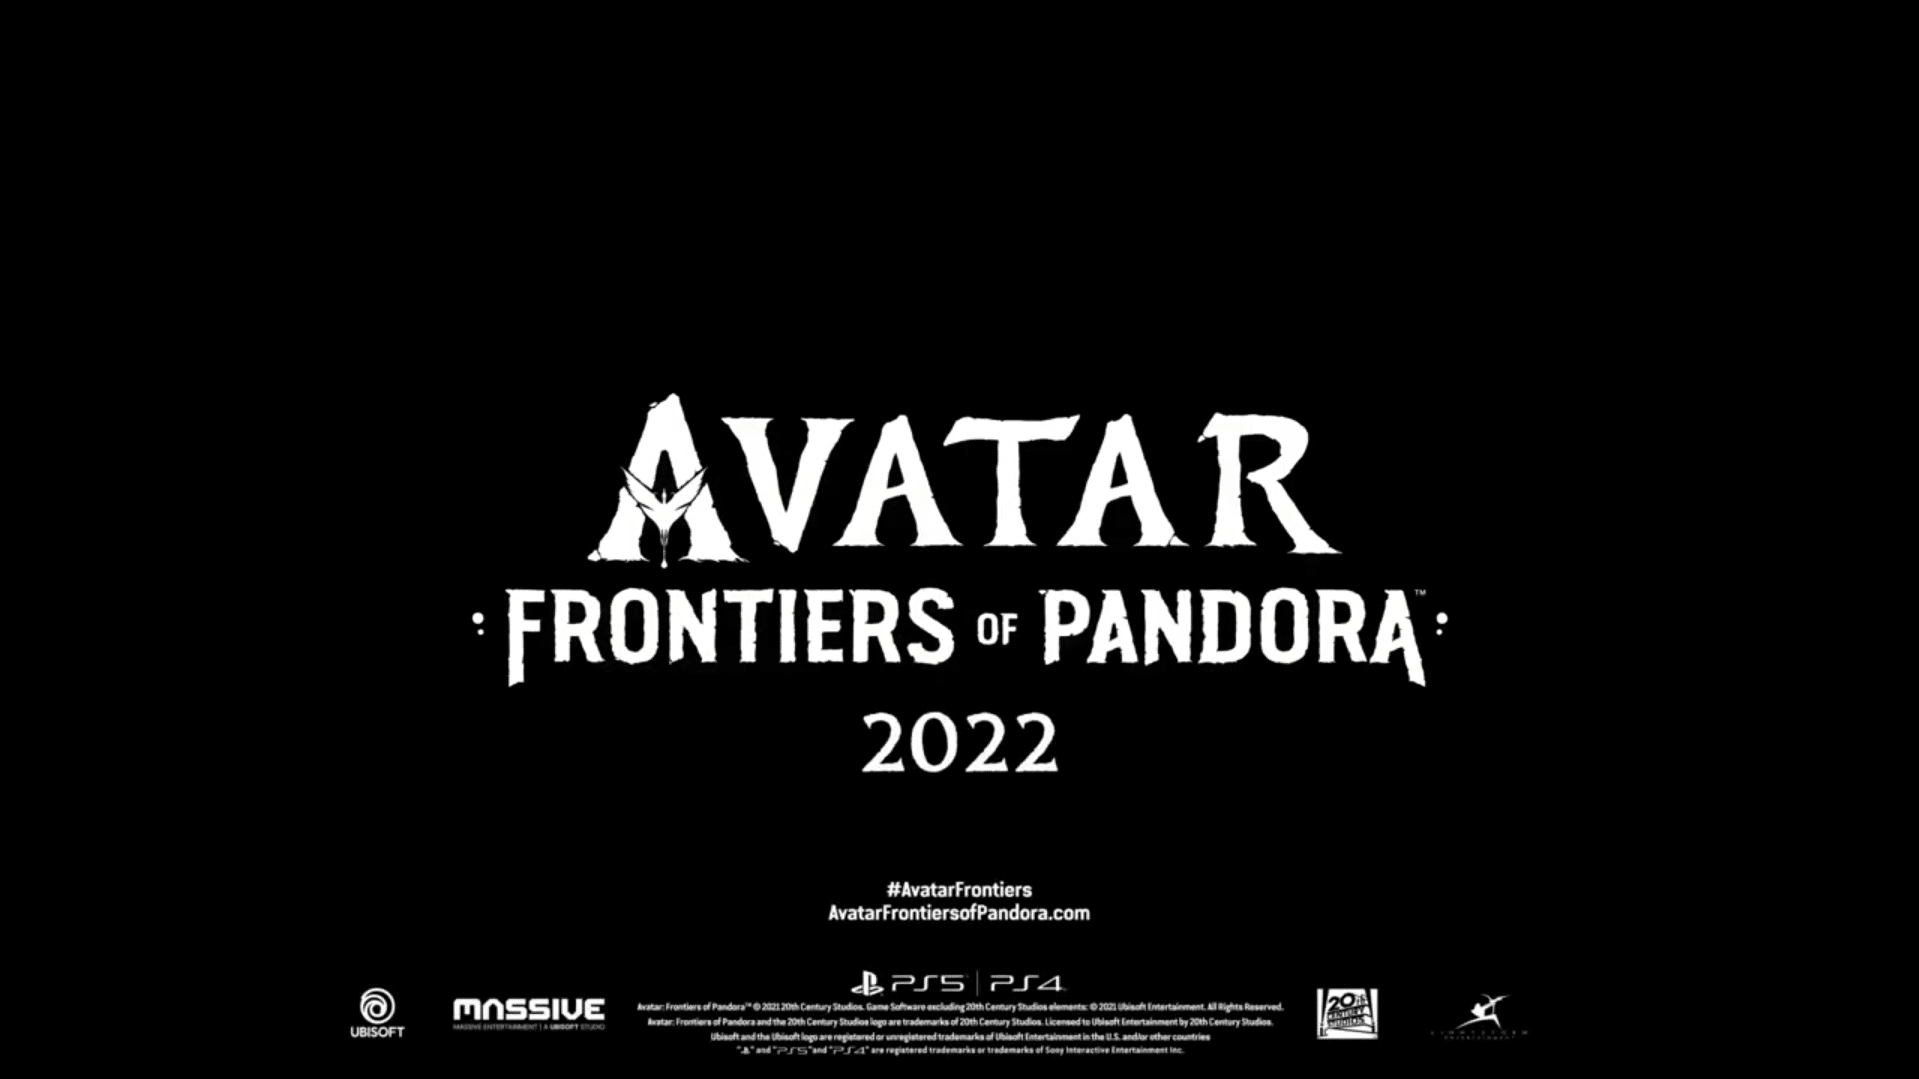 Avatar: Frontiers of Pandora Listed for PS4 by Sony Contrary to Ubisoft's Statement It's for Next-Gen Only